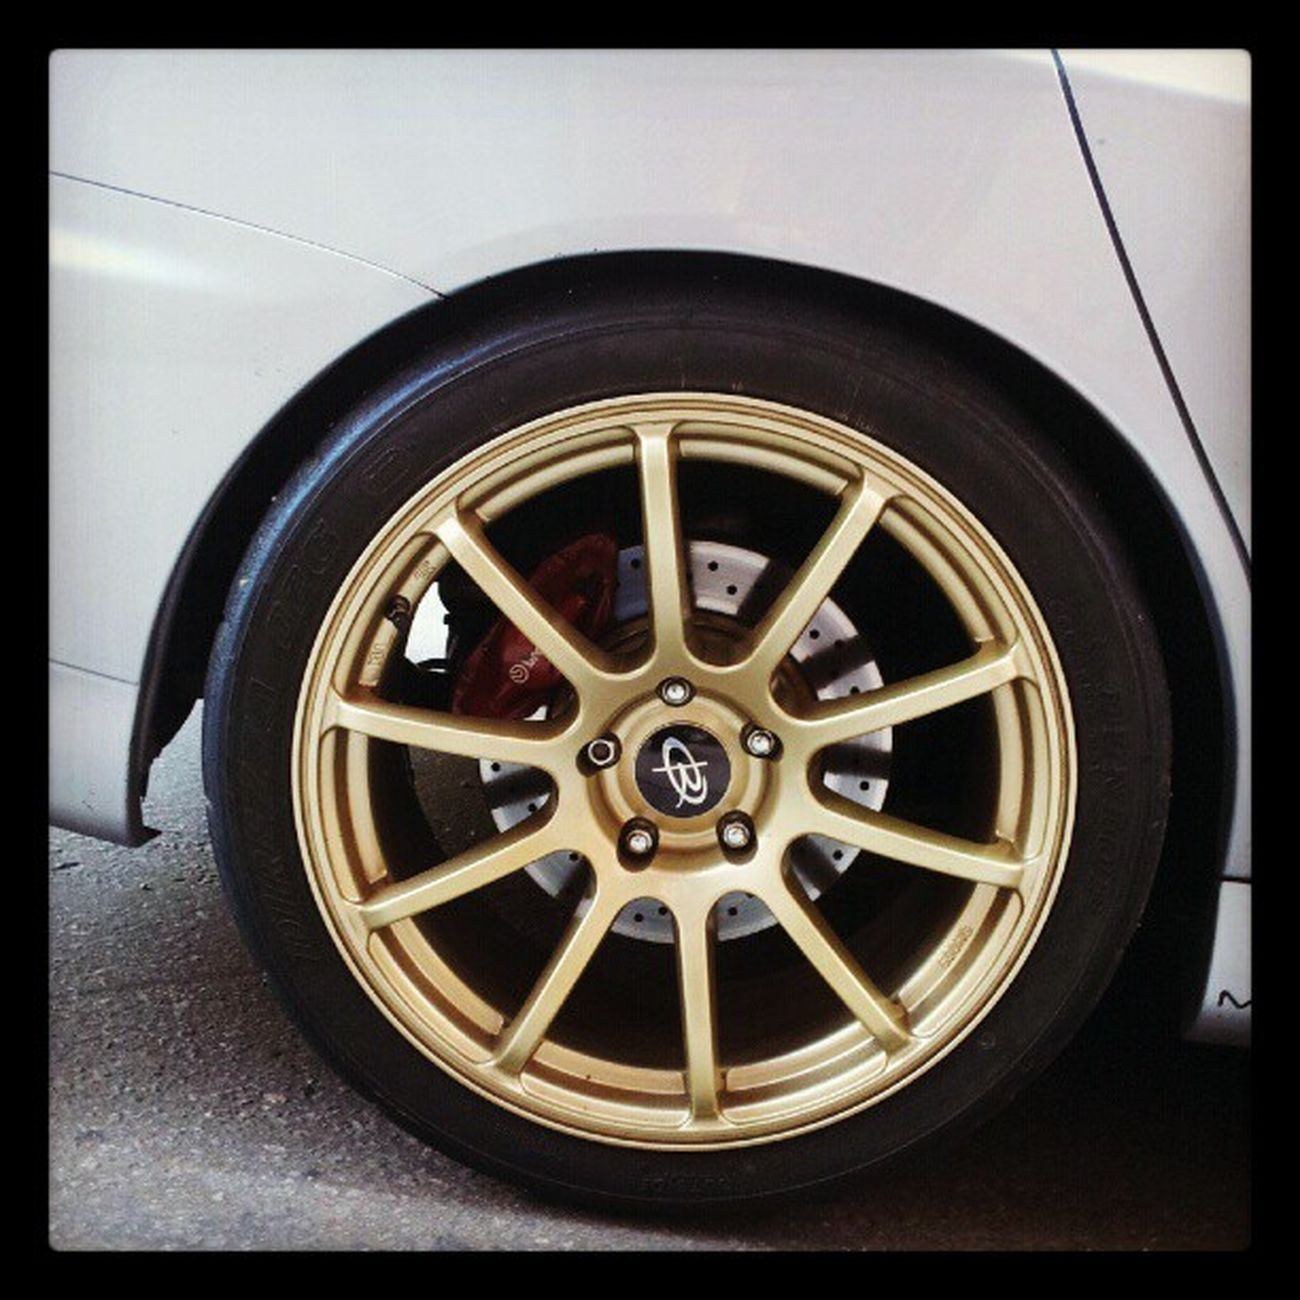 Wheel Felg Mitsubishi Lancer evo evo8 evolution